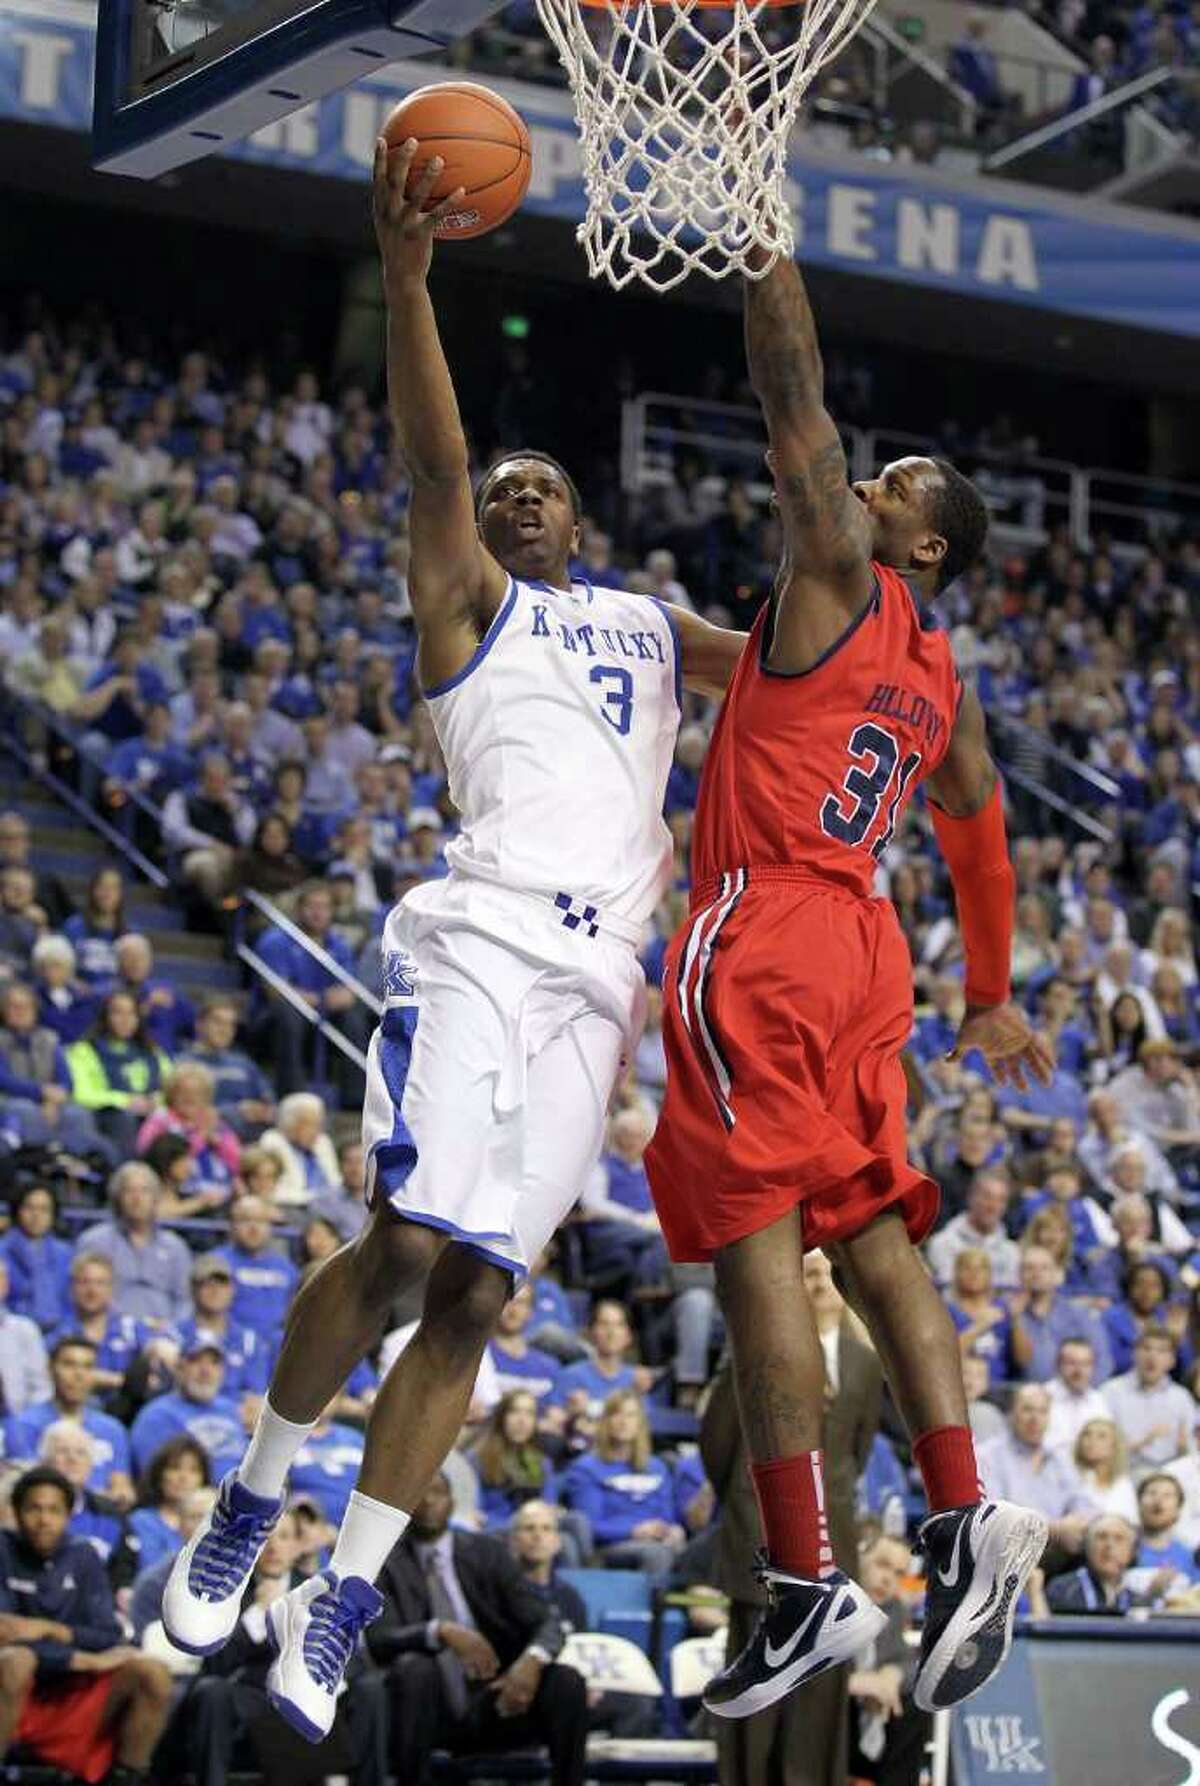 LEXINGTON, KY - FEBRUARY 18: Terrence Jones #3 of the Kentucky Wildcats shoots the ball while defended by Murphy Holloway #31 of the Ole Miss Rebels during the game at Rupp Arena on February 18, 2012 in Lexington, Kentucky. (Photo by Andy Lyons/Getty Images)